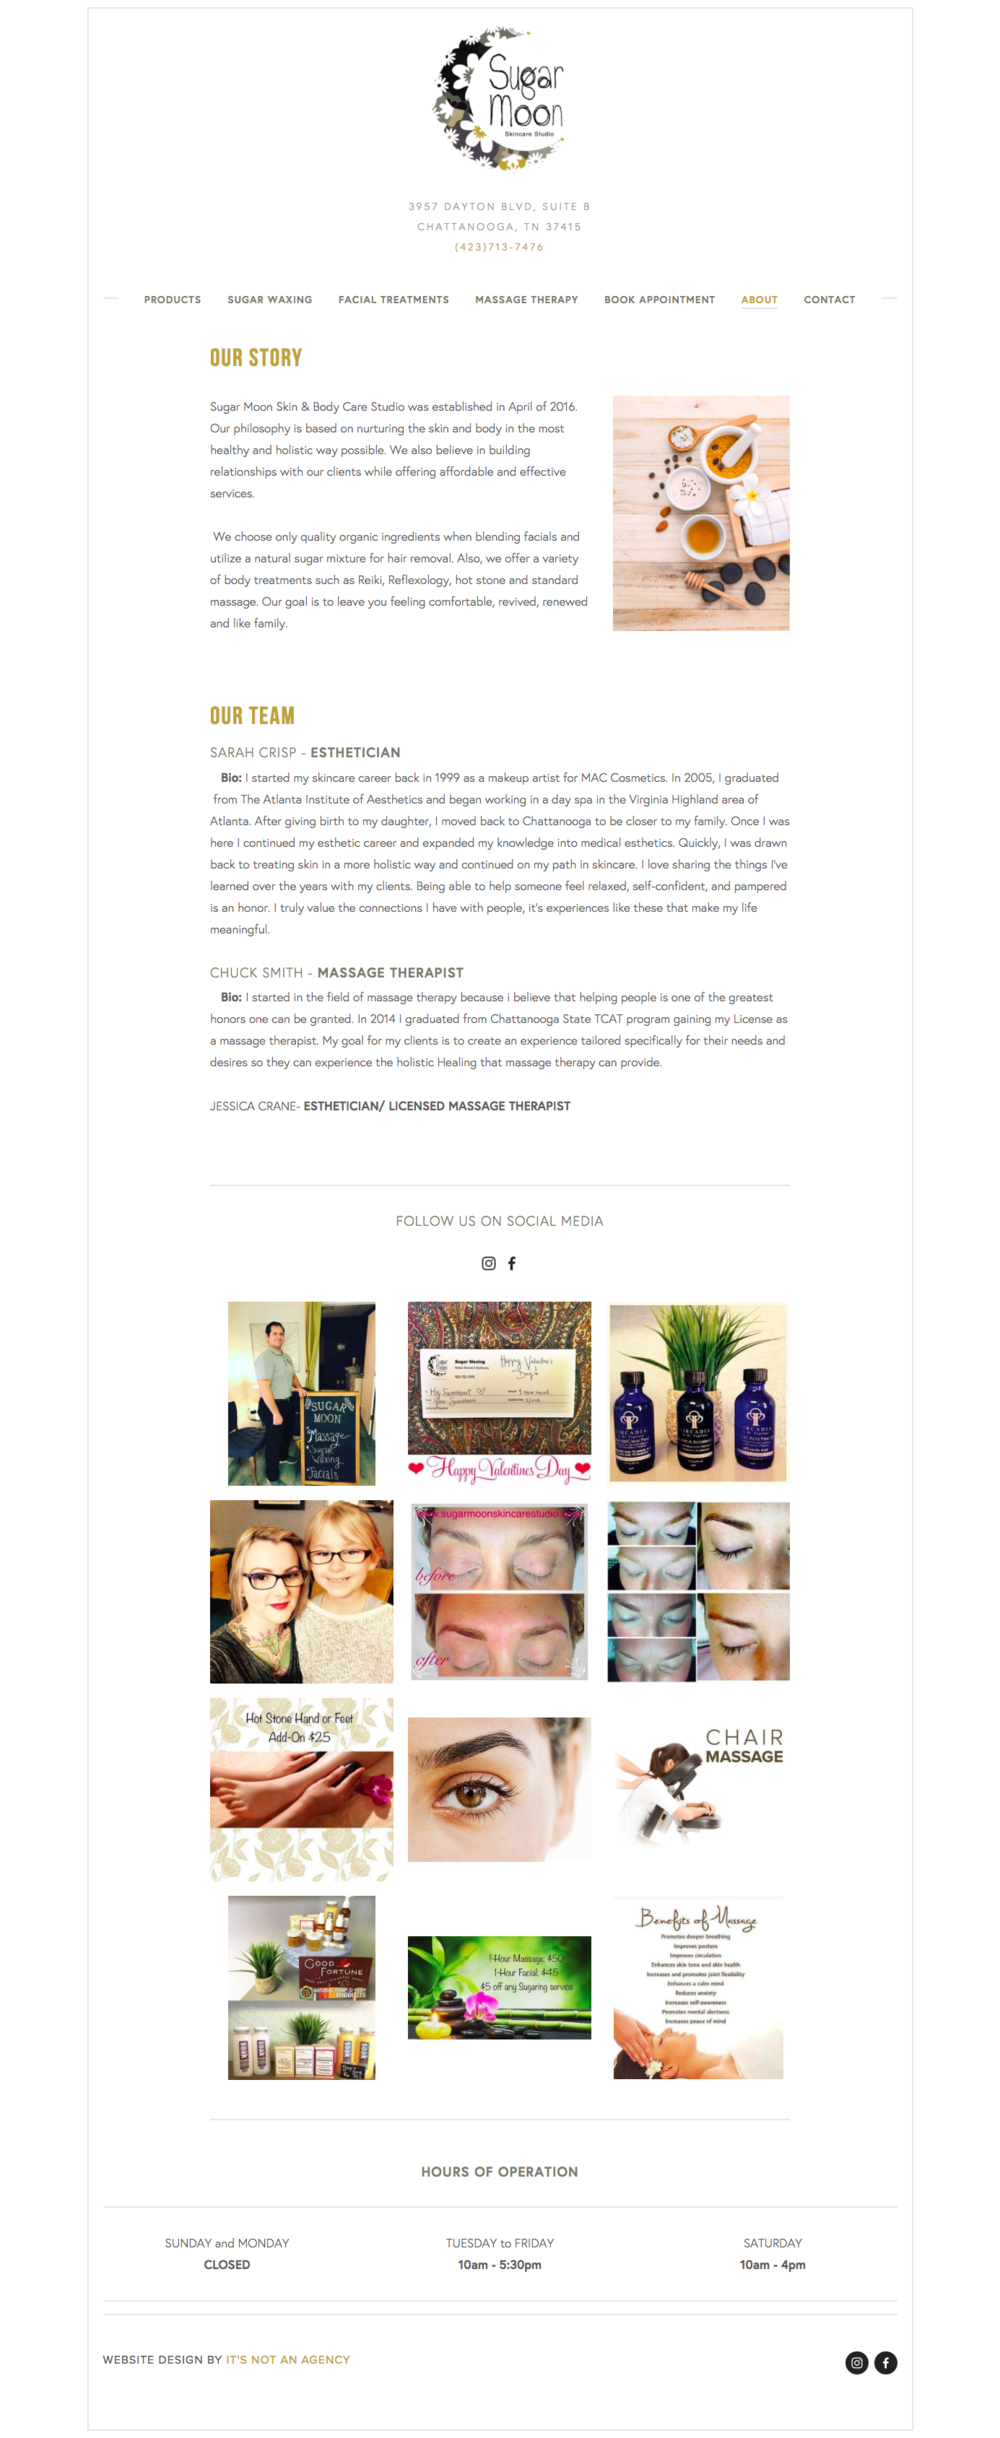 screencapture-sugarmoonskincarestudio-about-1488821011114.png